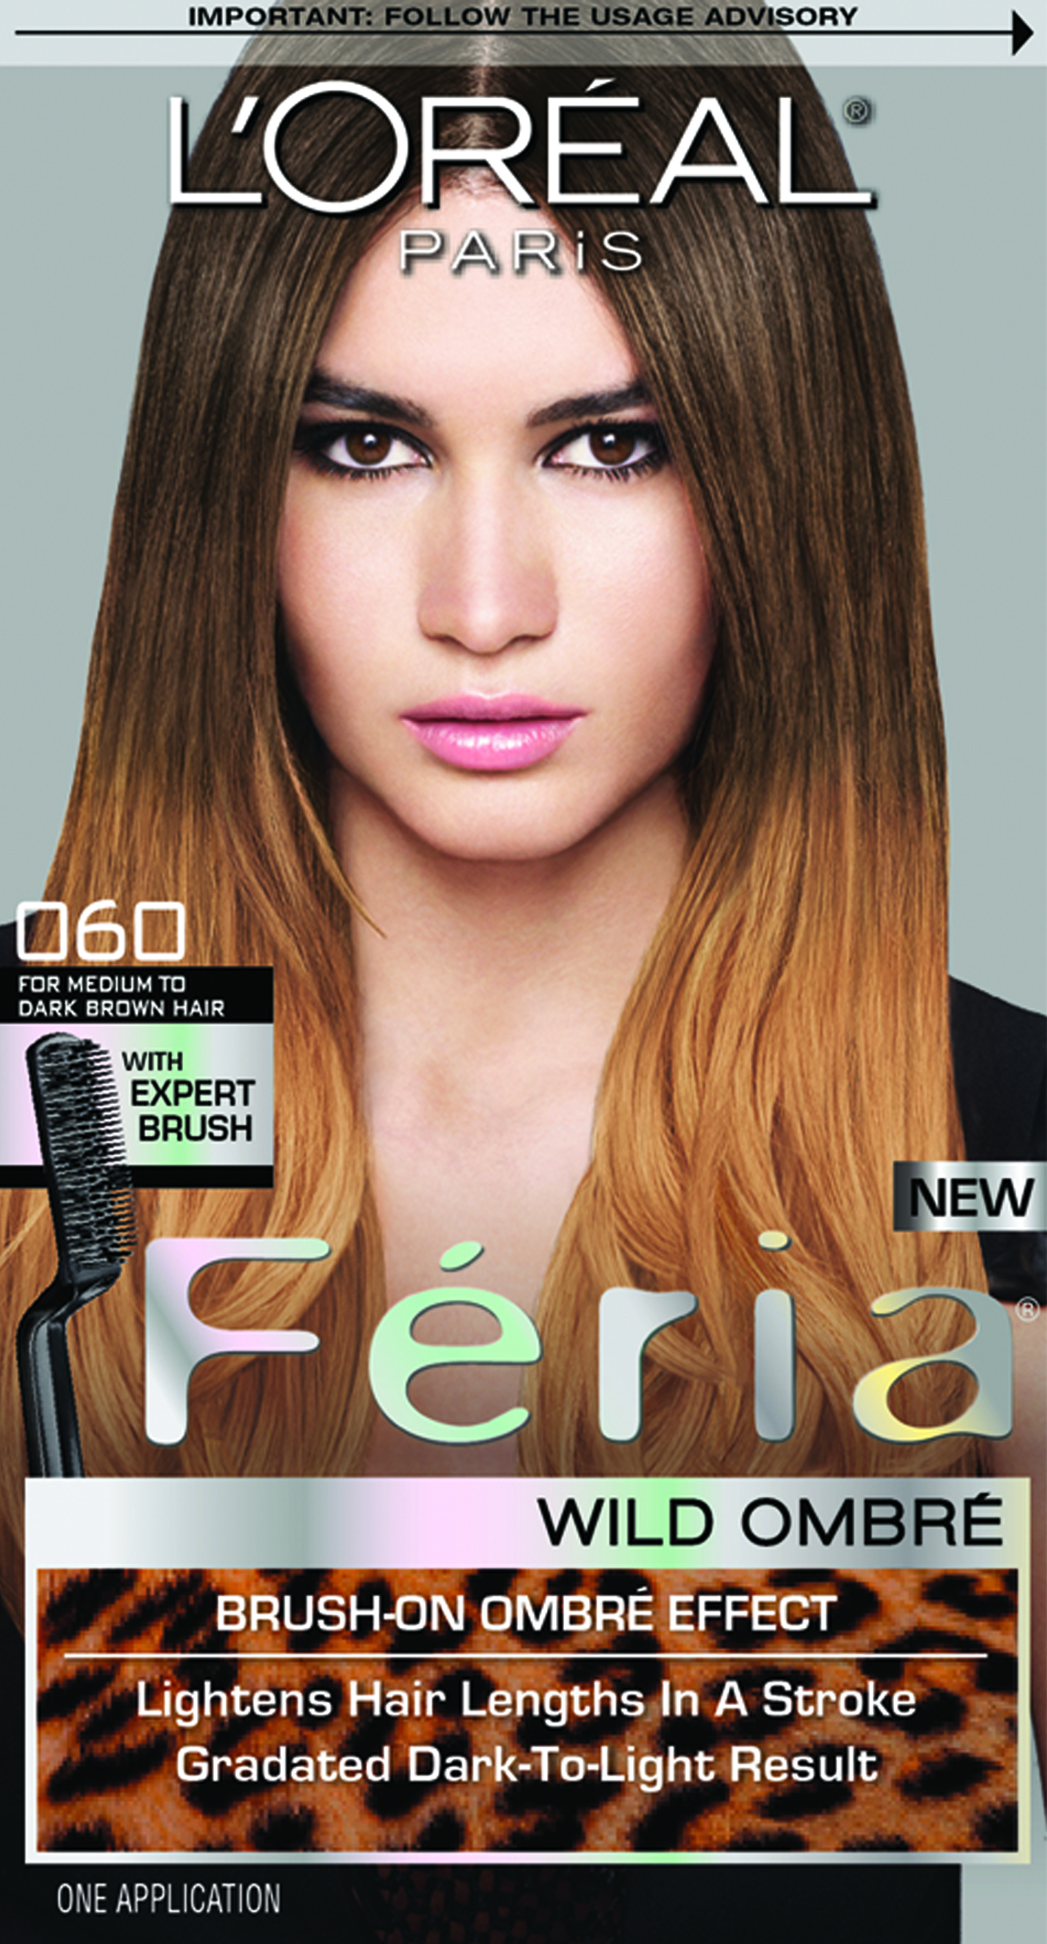 Oreal Paris Feria Wild Ombre In O60 For Medium To Dark Brown Hair